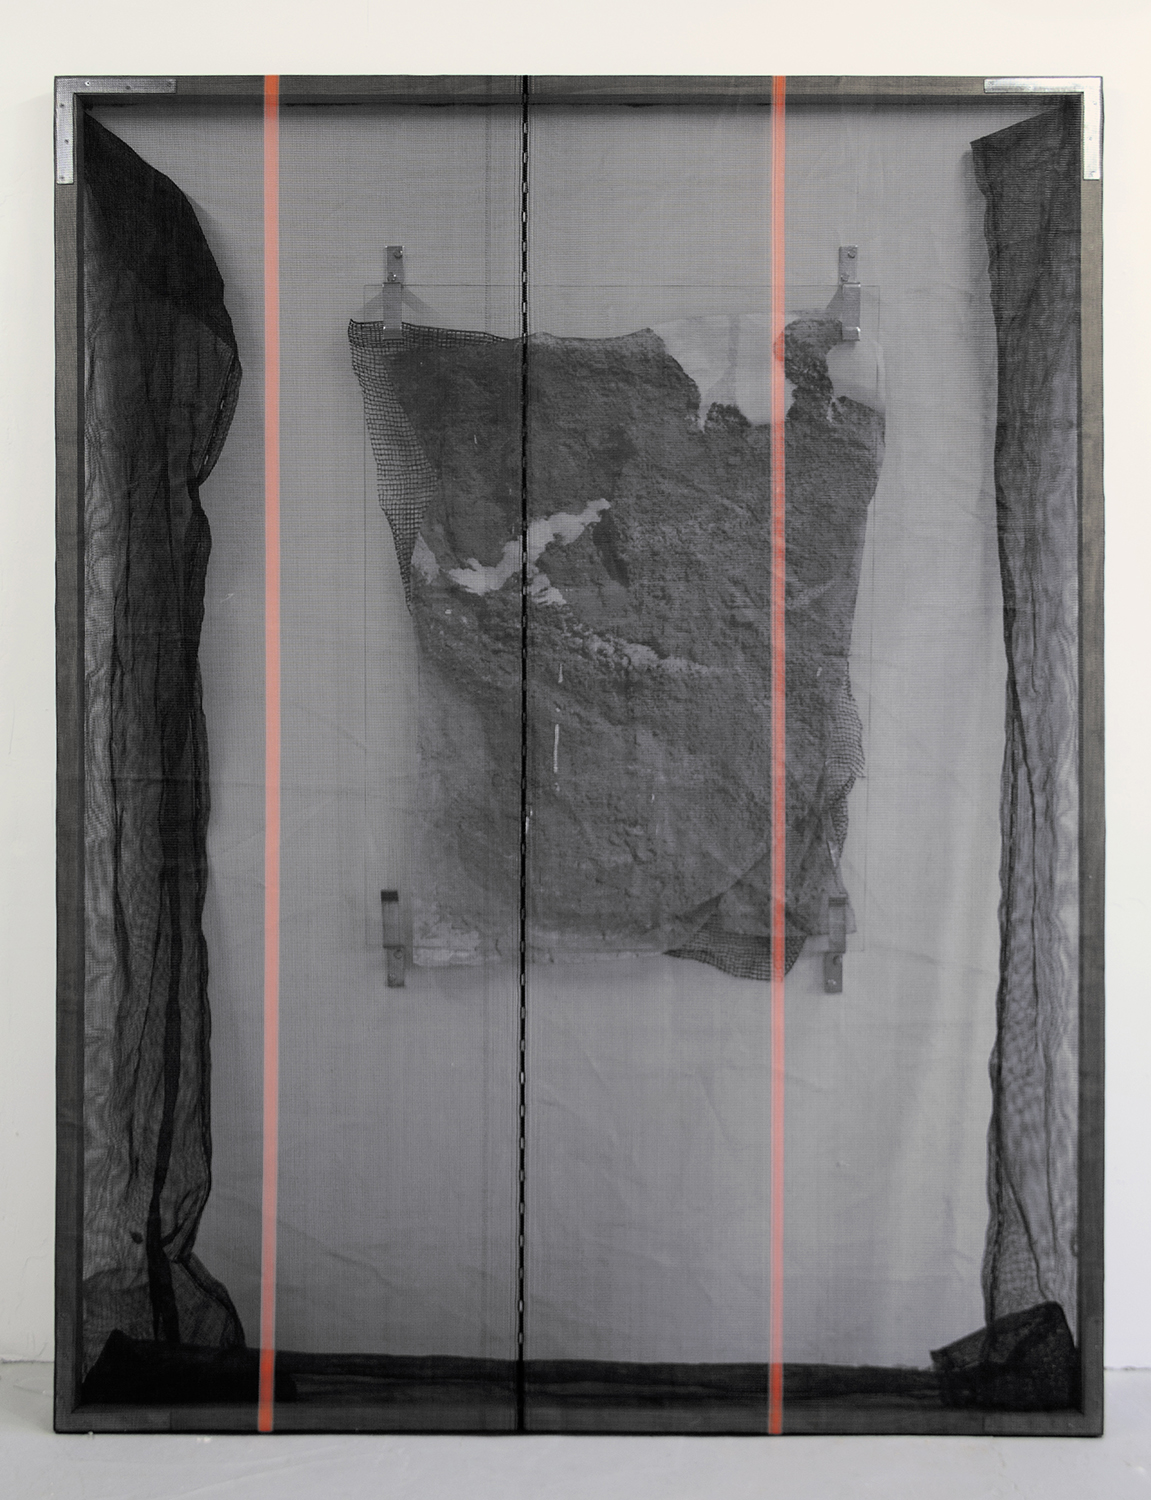 Valerie Snobeck, Distance Approcimated by Buoyancy,  2012,Debris netting, partially removed mirror, peeled print on plastic, door barricade brackets, wood, hardware, 243,9 x 182,9 cm